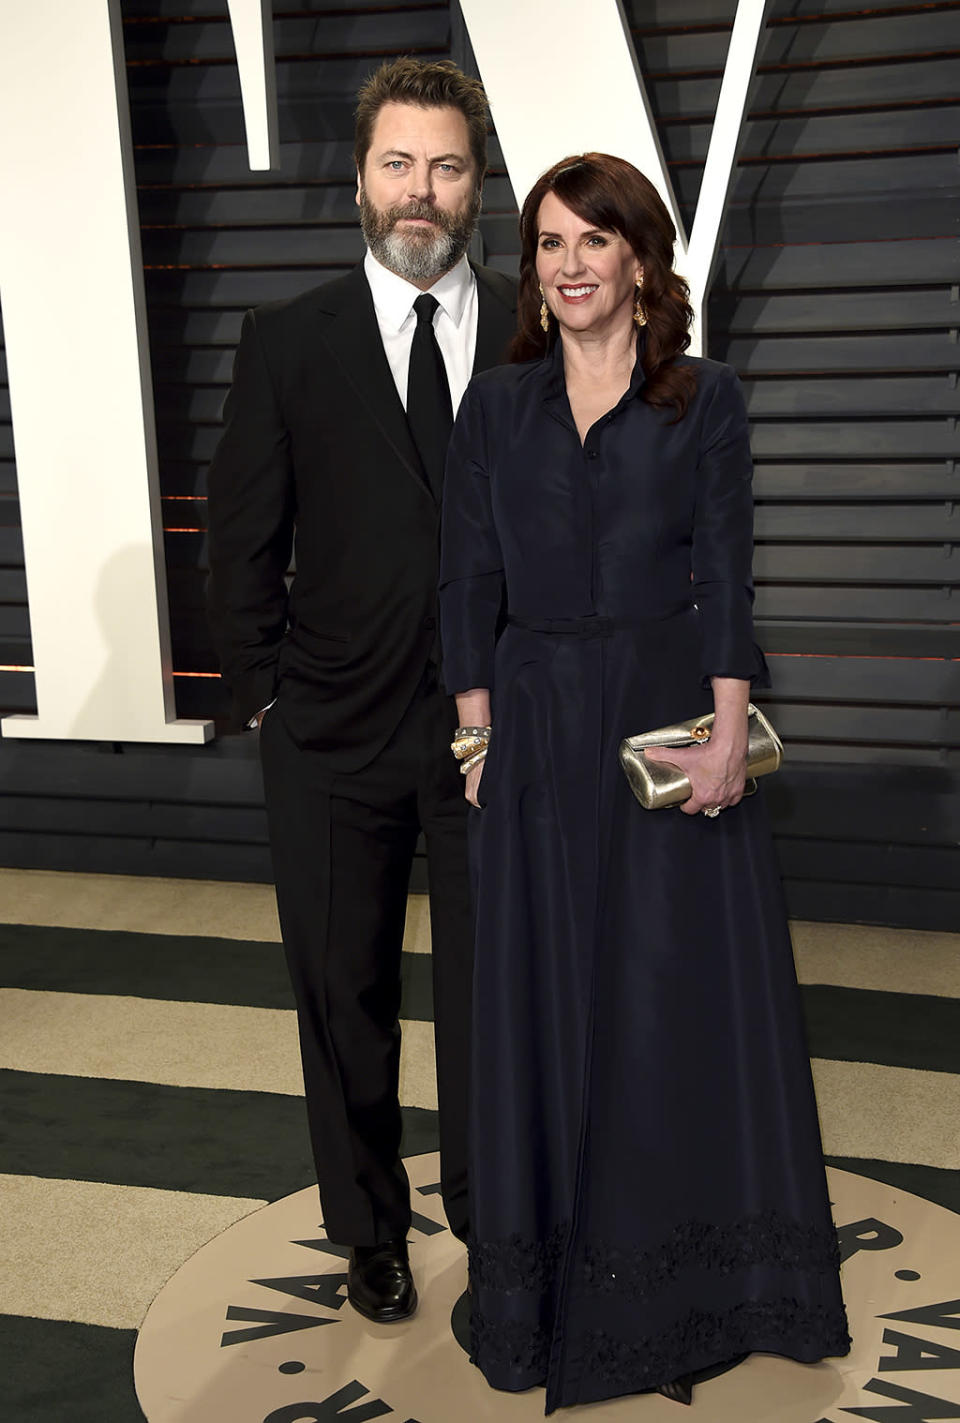 <p>Nick Offerman, left, and Megan Mullally arrive at the Vanity Fair Oscar Party on Sunday, Feb. 26, 2017, in Beverly Hills, Calif. (Photo by Evan Agostini/Invision/AP) </p>